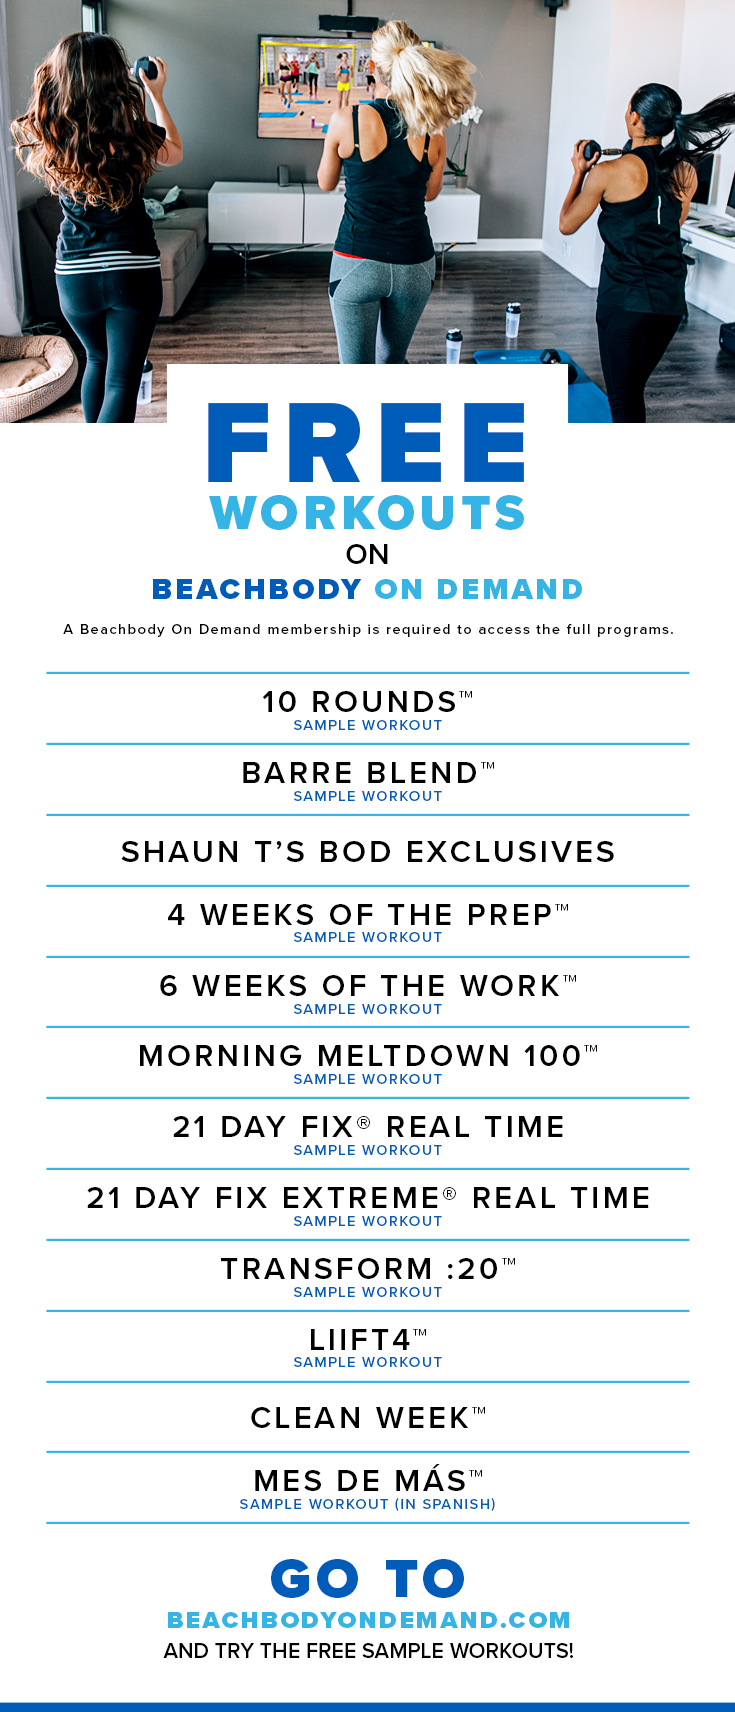 Free sample workouts on Beachbody